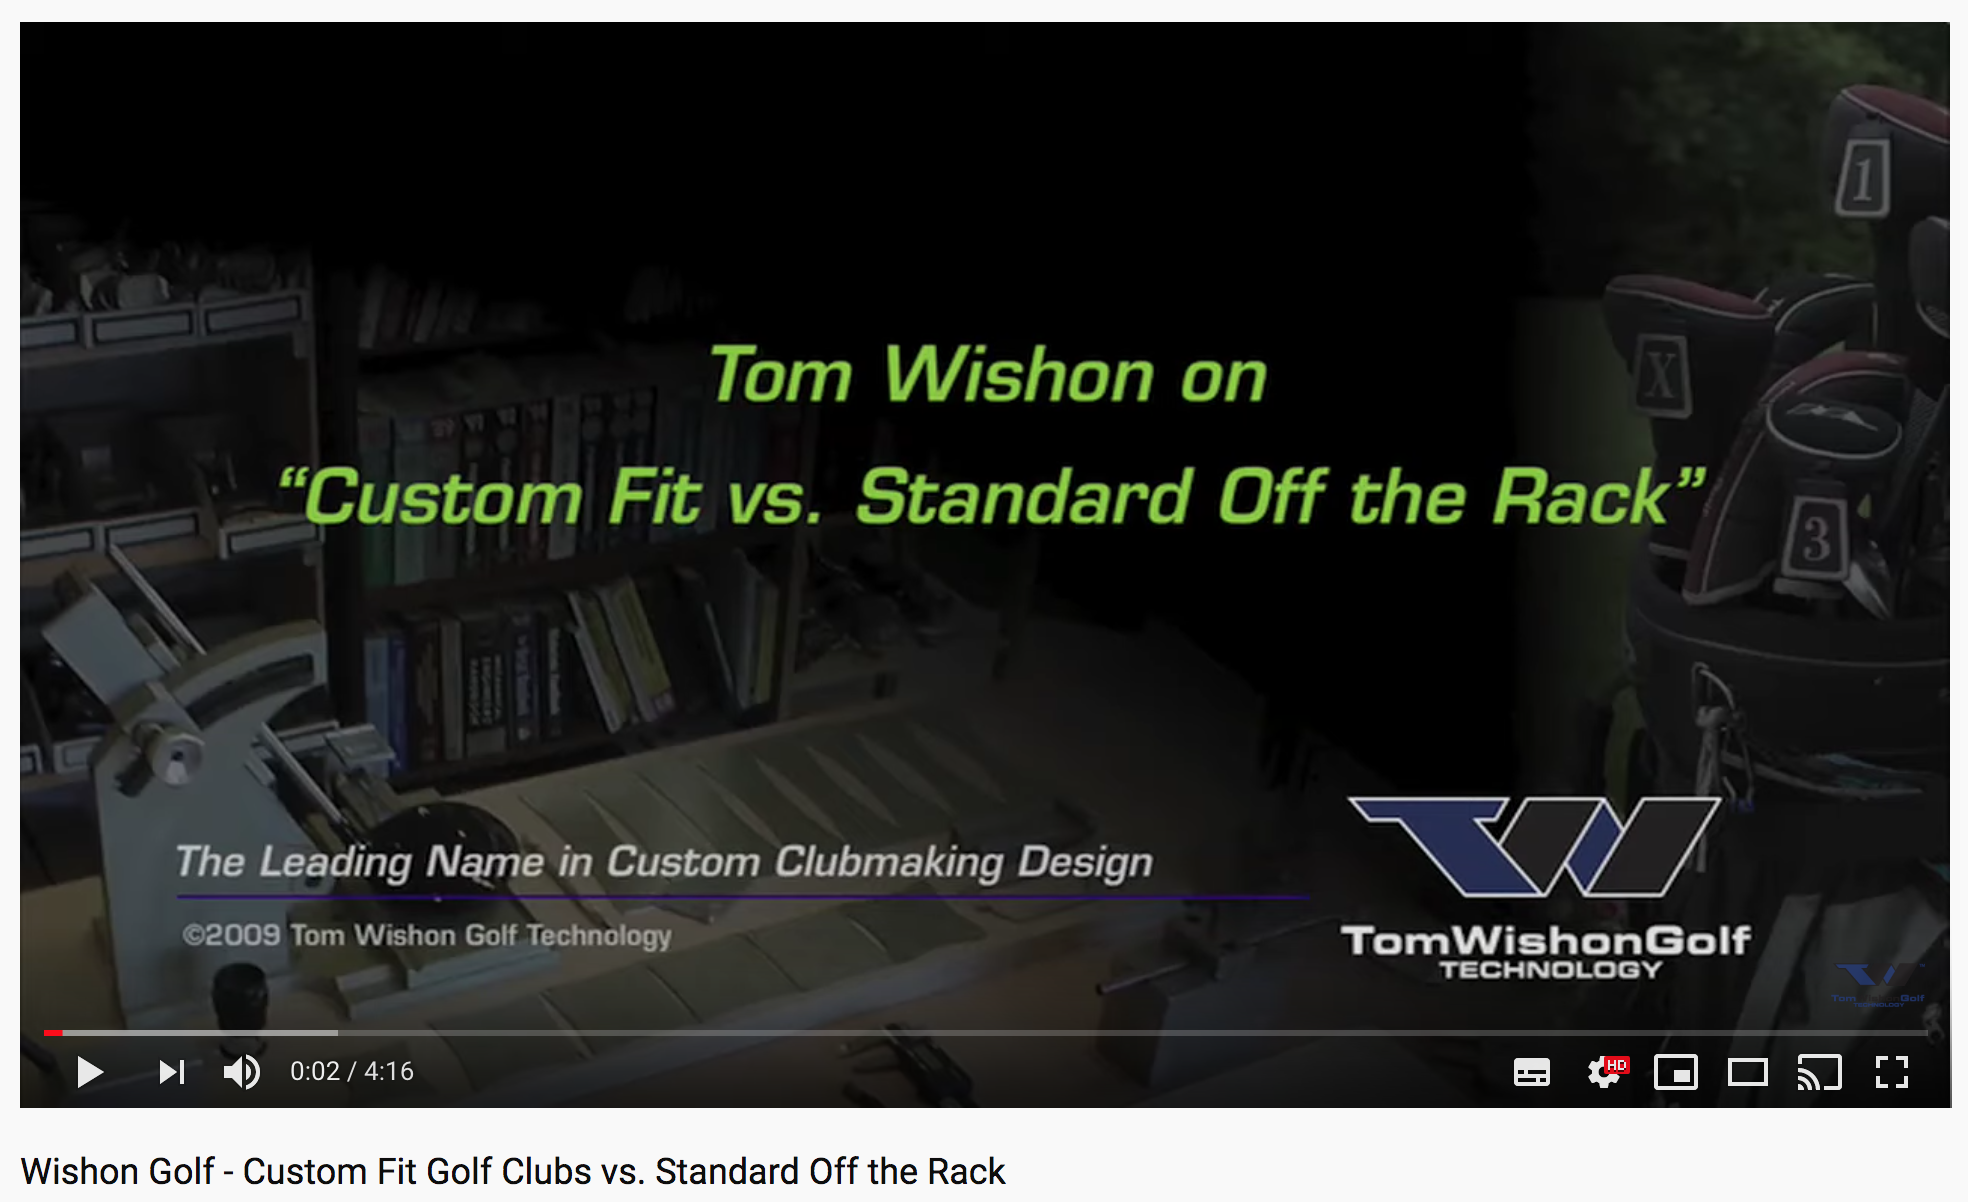 Custom Fit Golf Clubs vs. Standard Off the Rack